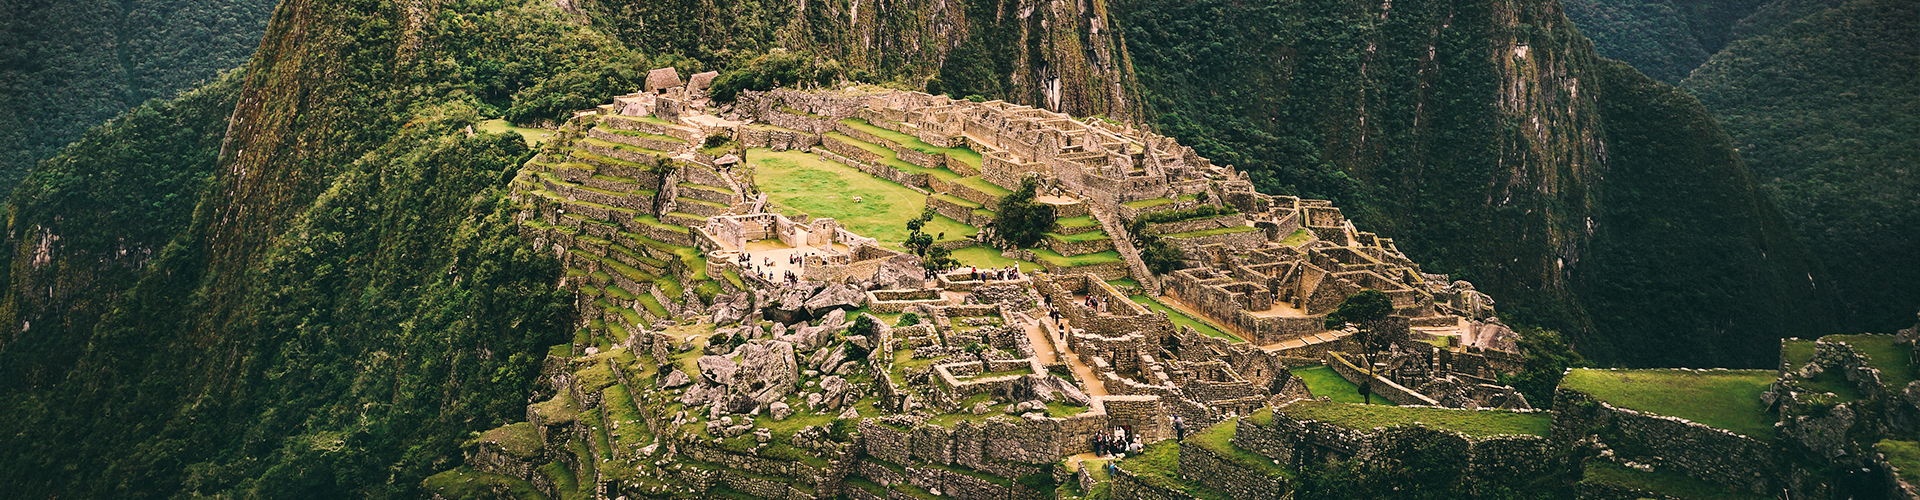 Peru: Anthropology & Archaeology